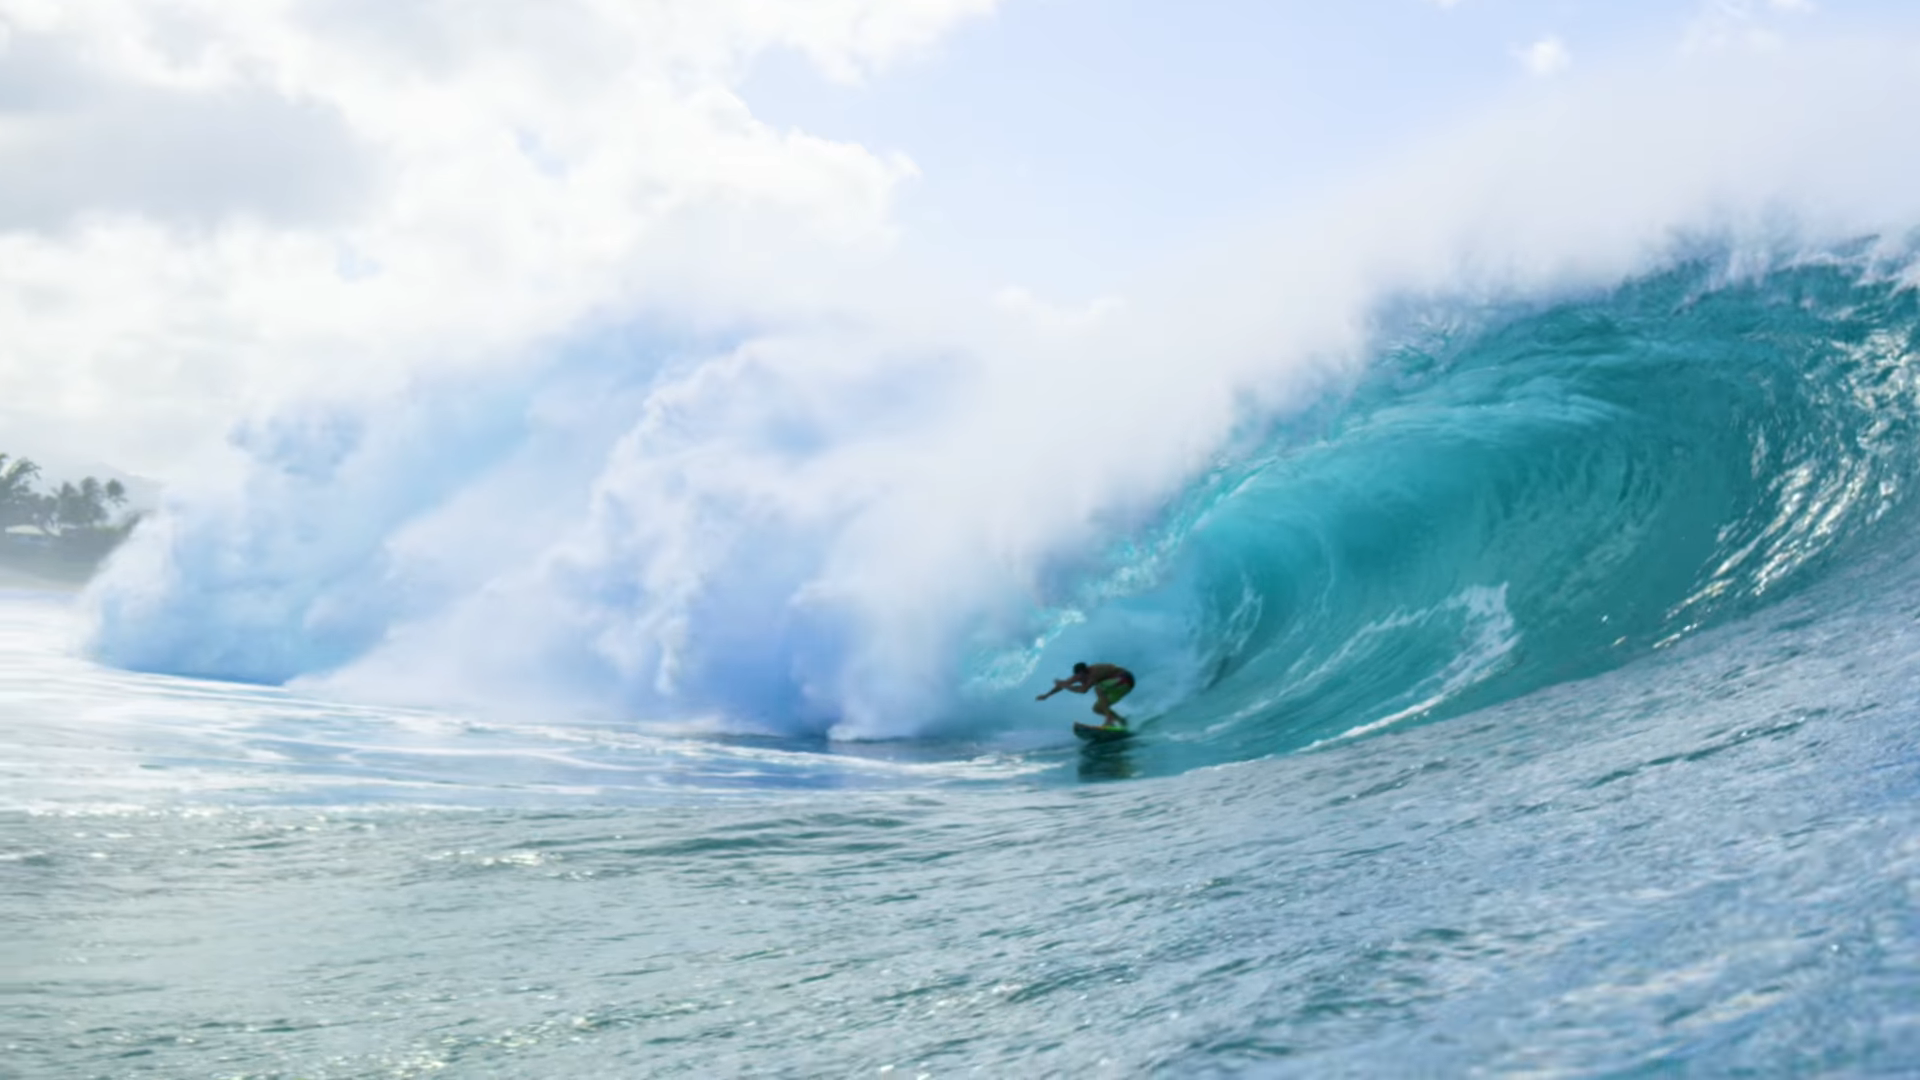 Makua Rothman New video at Home for the Winter